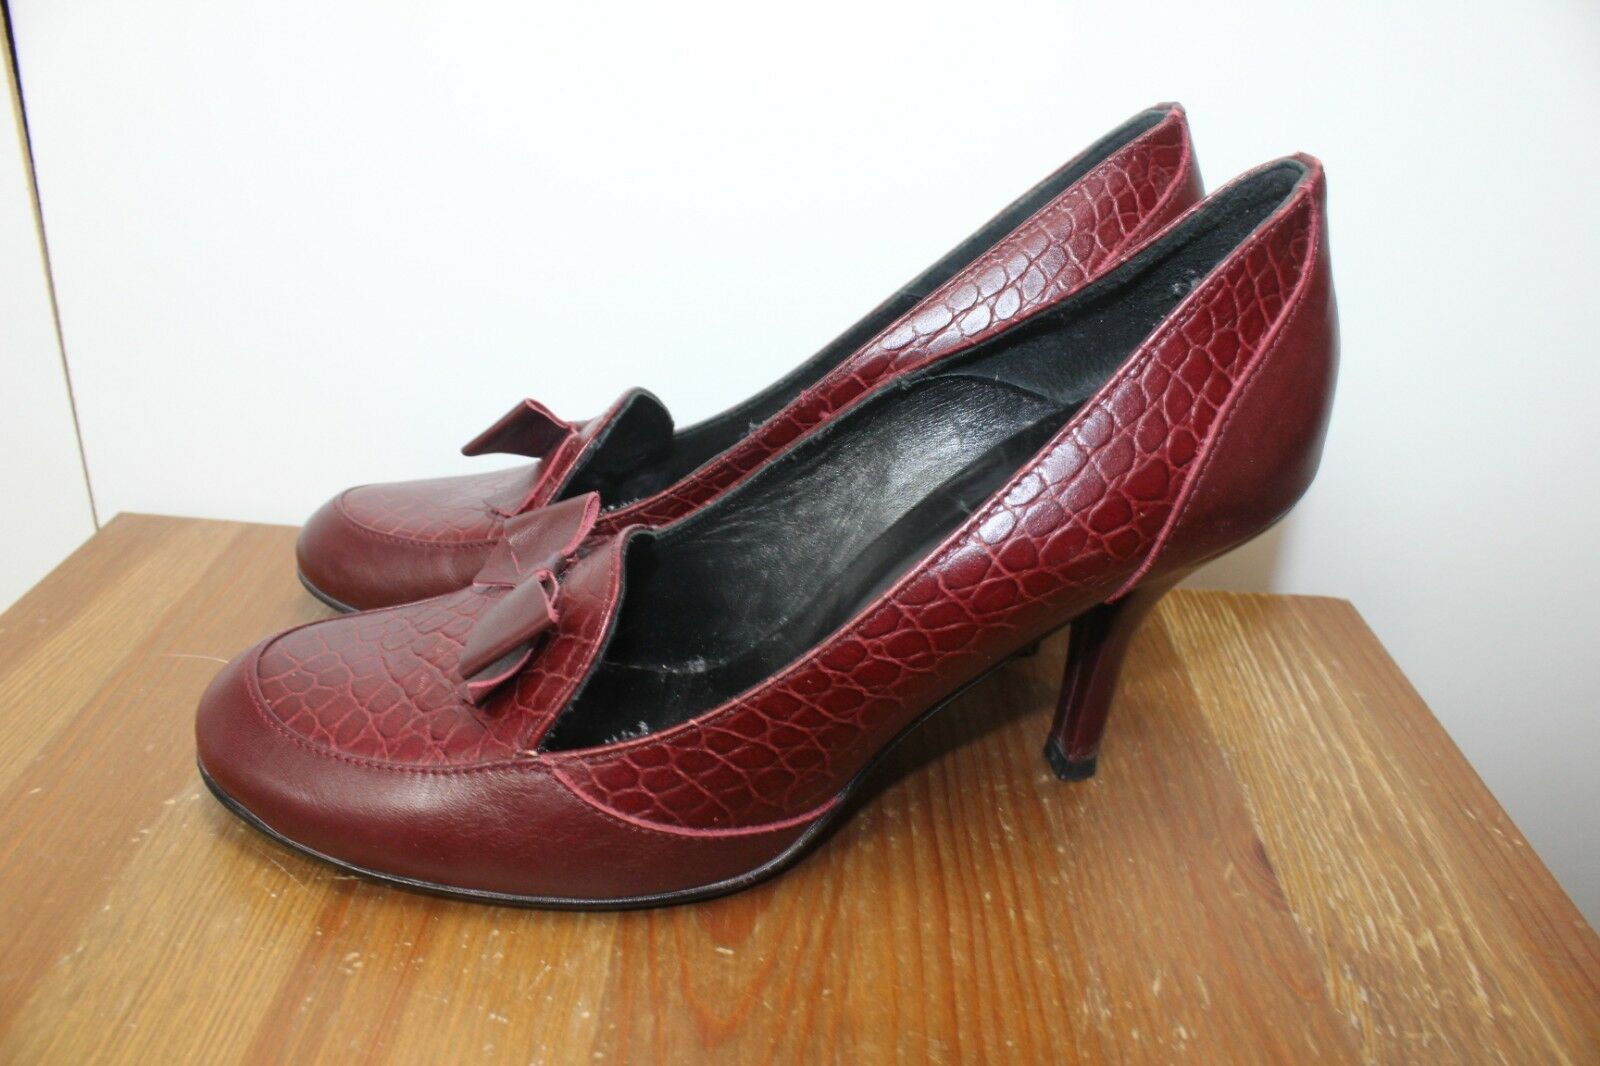 Red burgundy leather bow shoes by Jones 'Contrast' heel bow leather toe snakeskin 774936